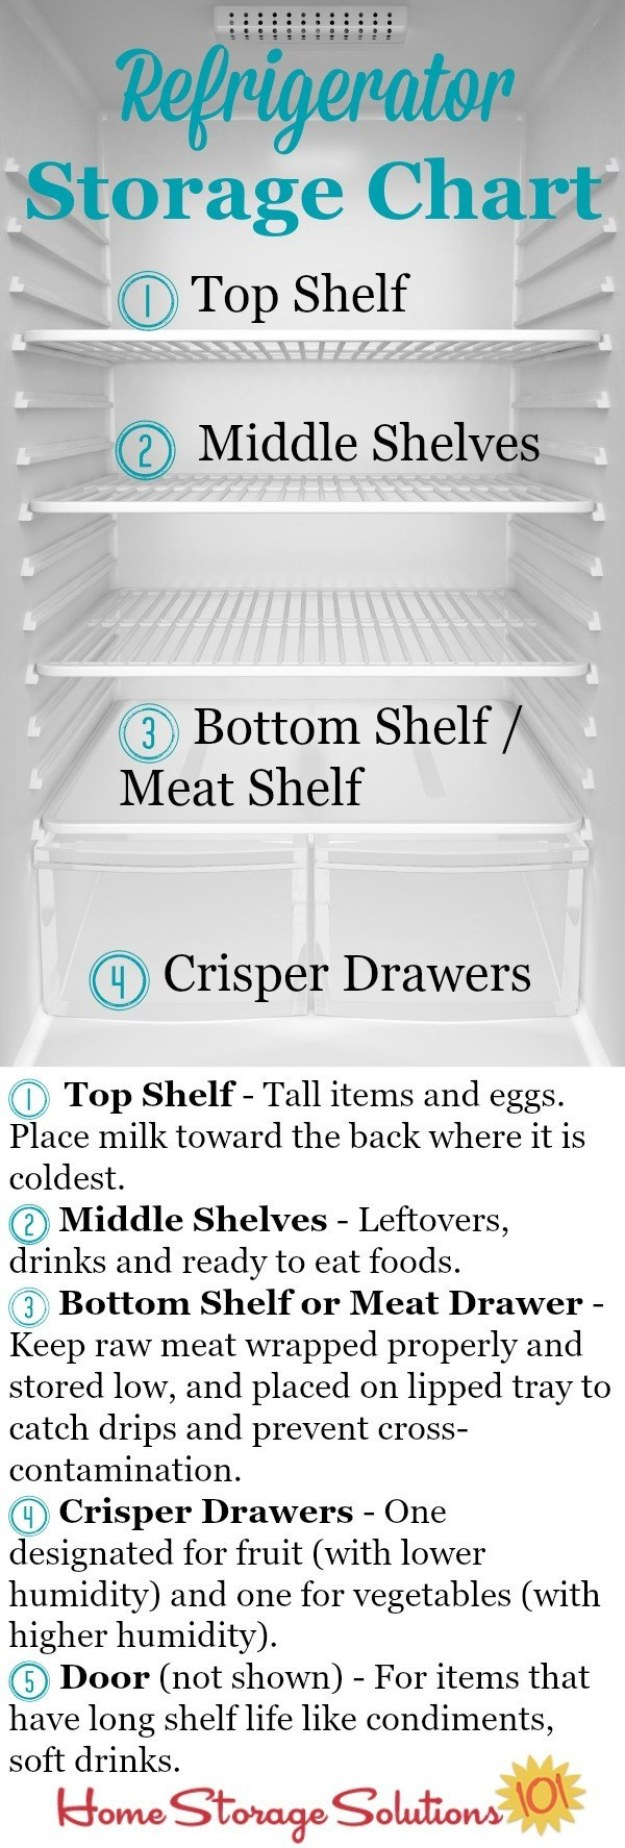 Then store everything in your fridge according to which areas in your fridge are the coldest.